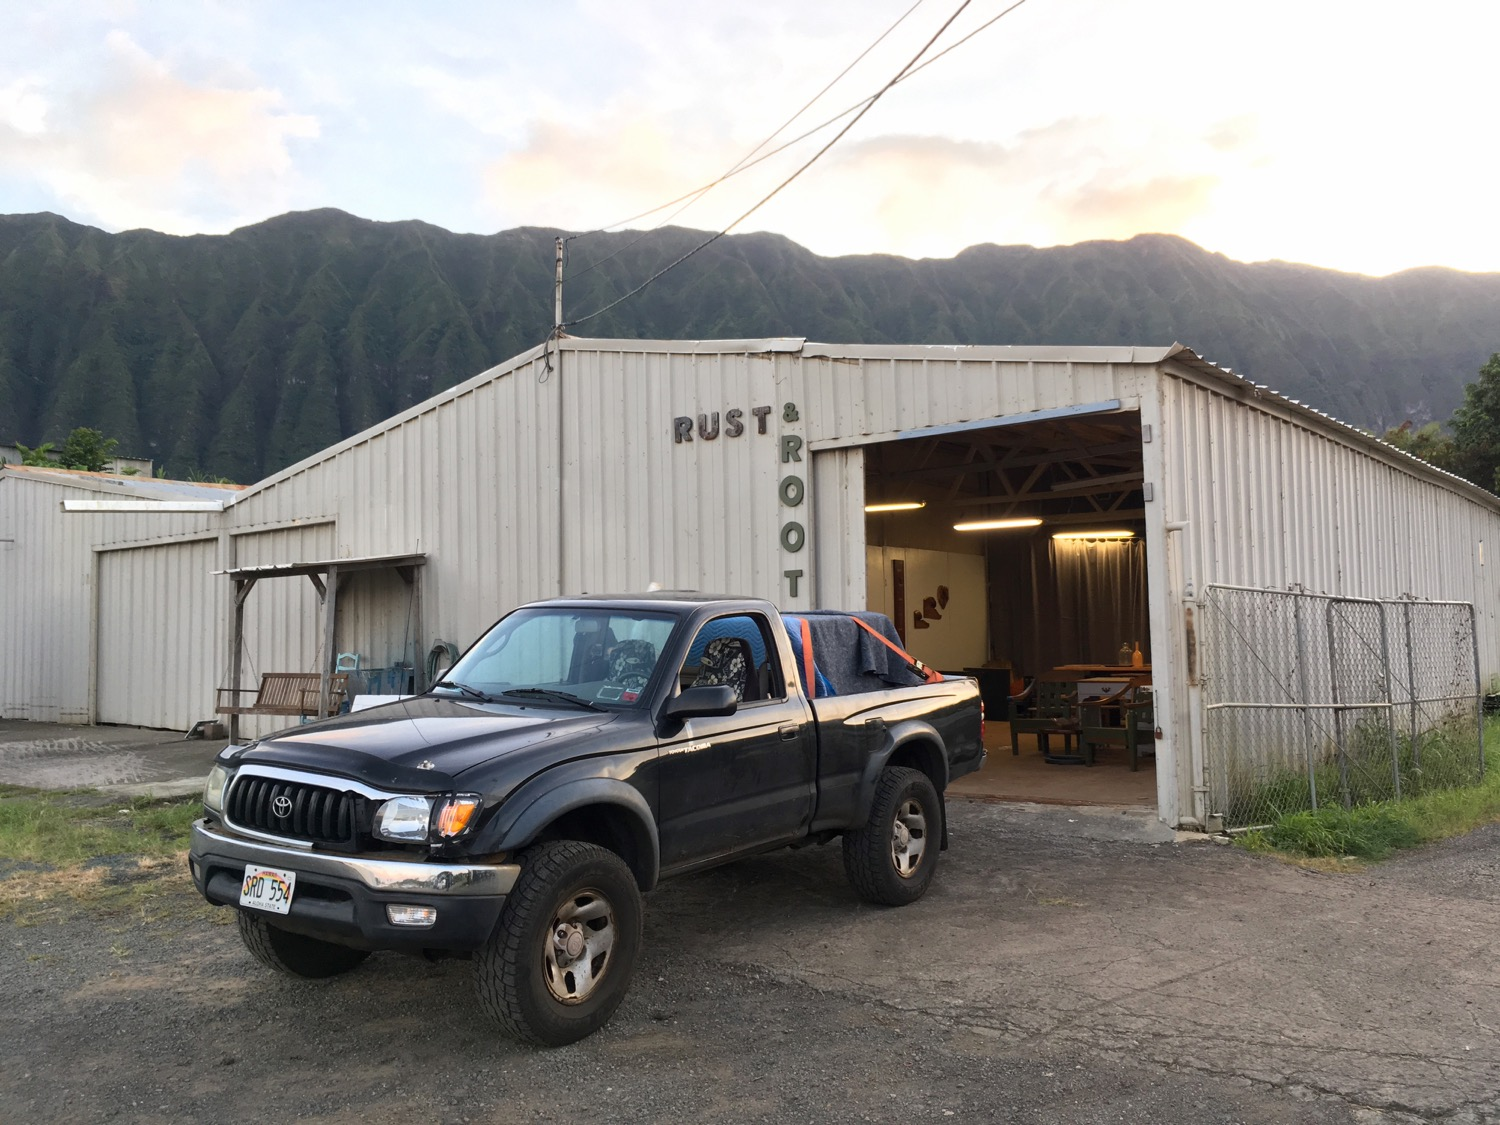 Here's our showroom! We were about to go deliver a desk to a family in Kailua, but I paused for a picture because the showroom looked so good in the early evening light.